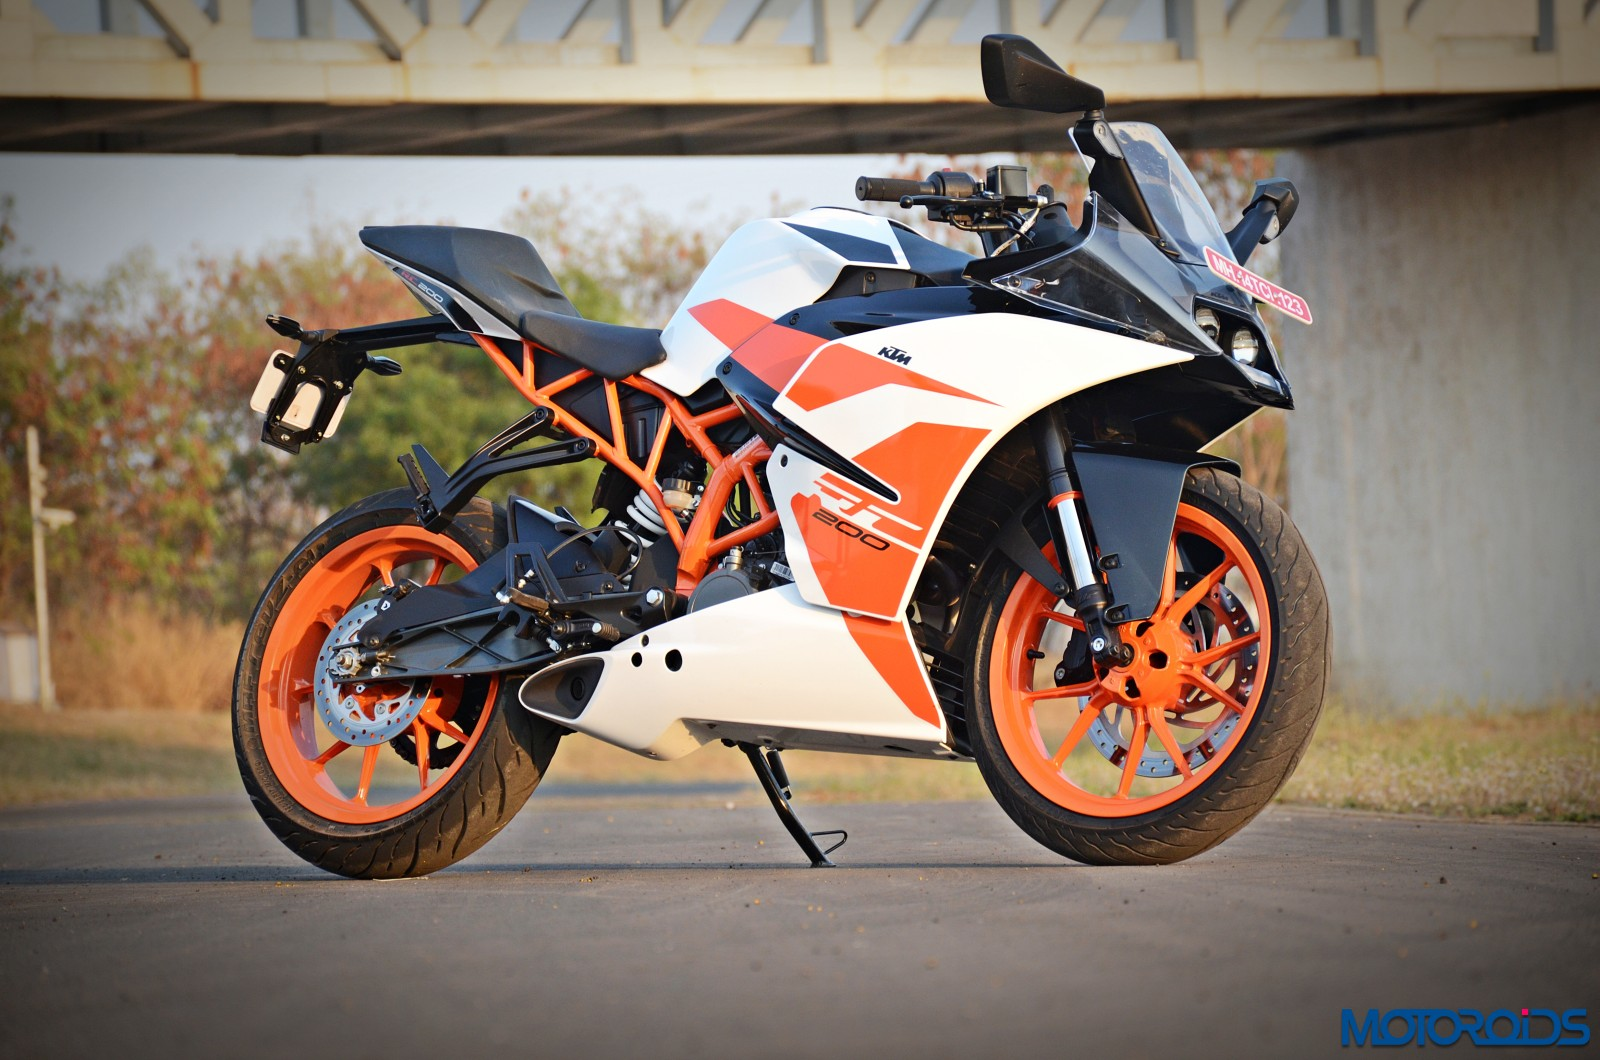 January 30, 2017-2017-KTM-RC200-front-3.jpg